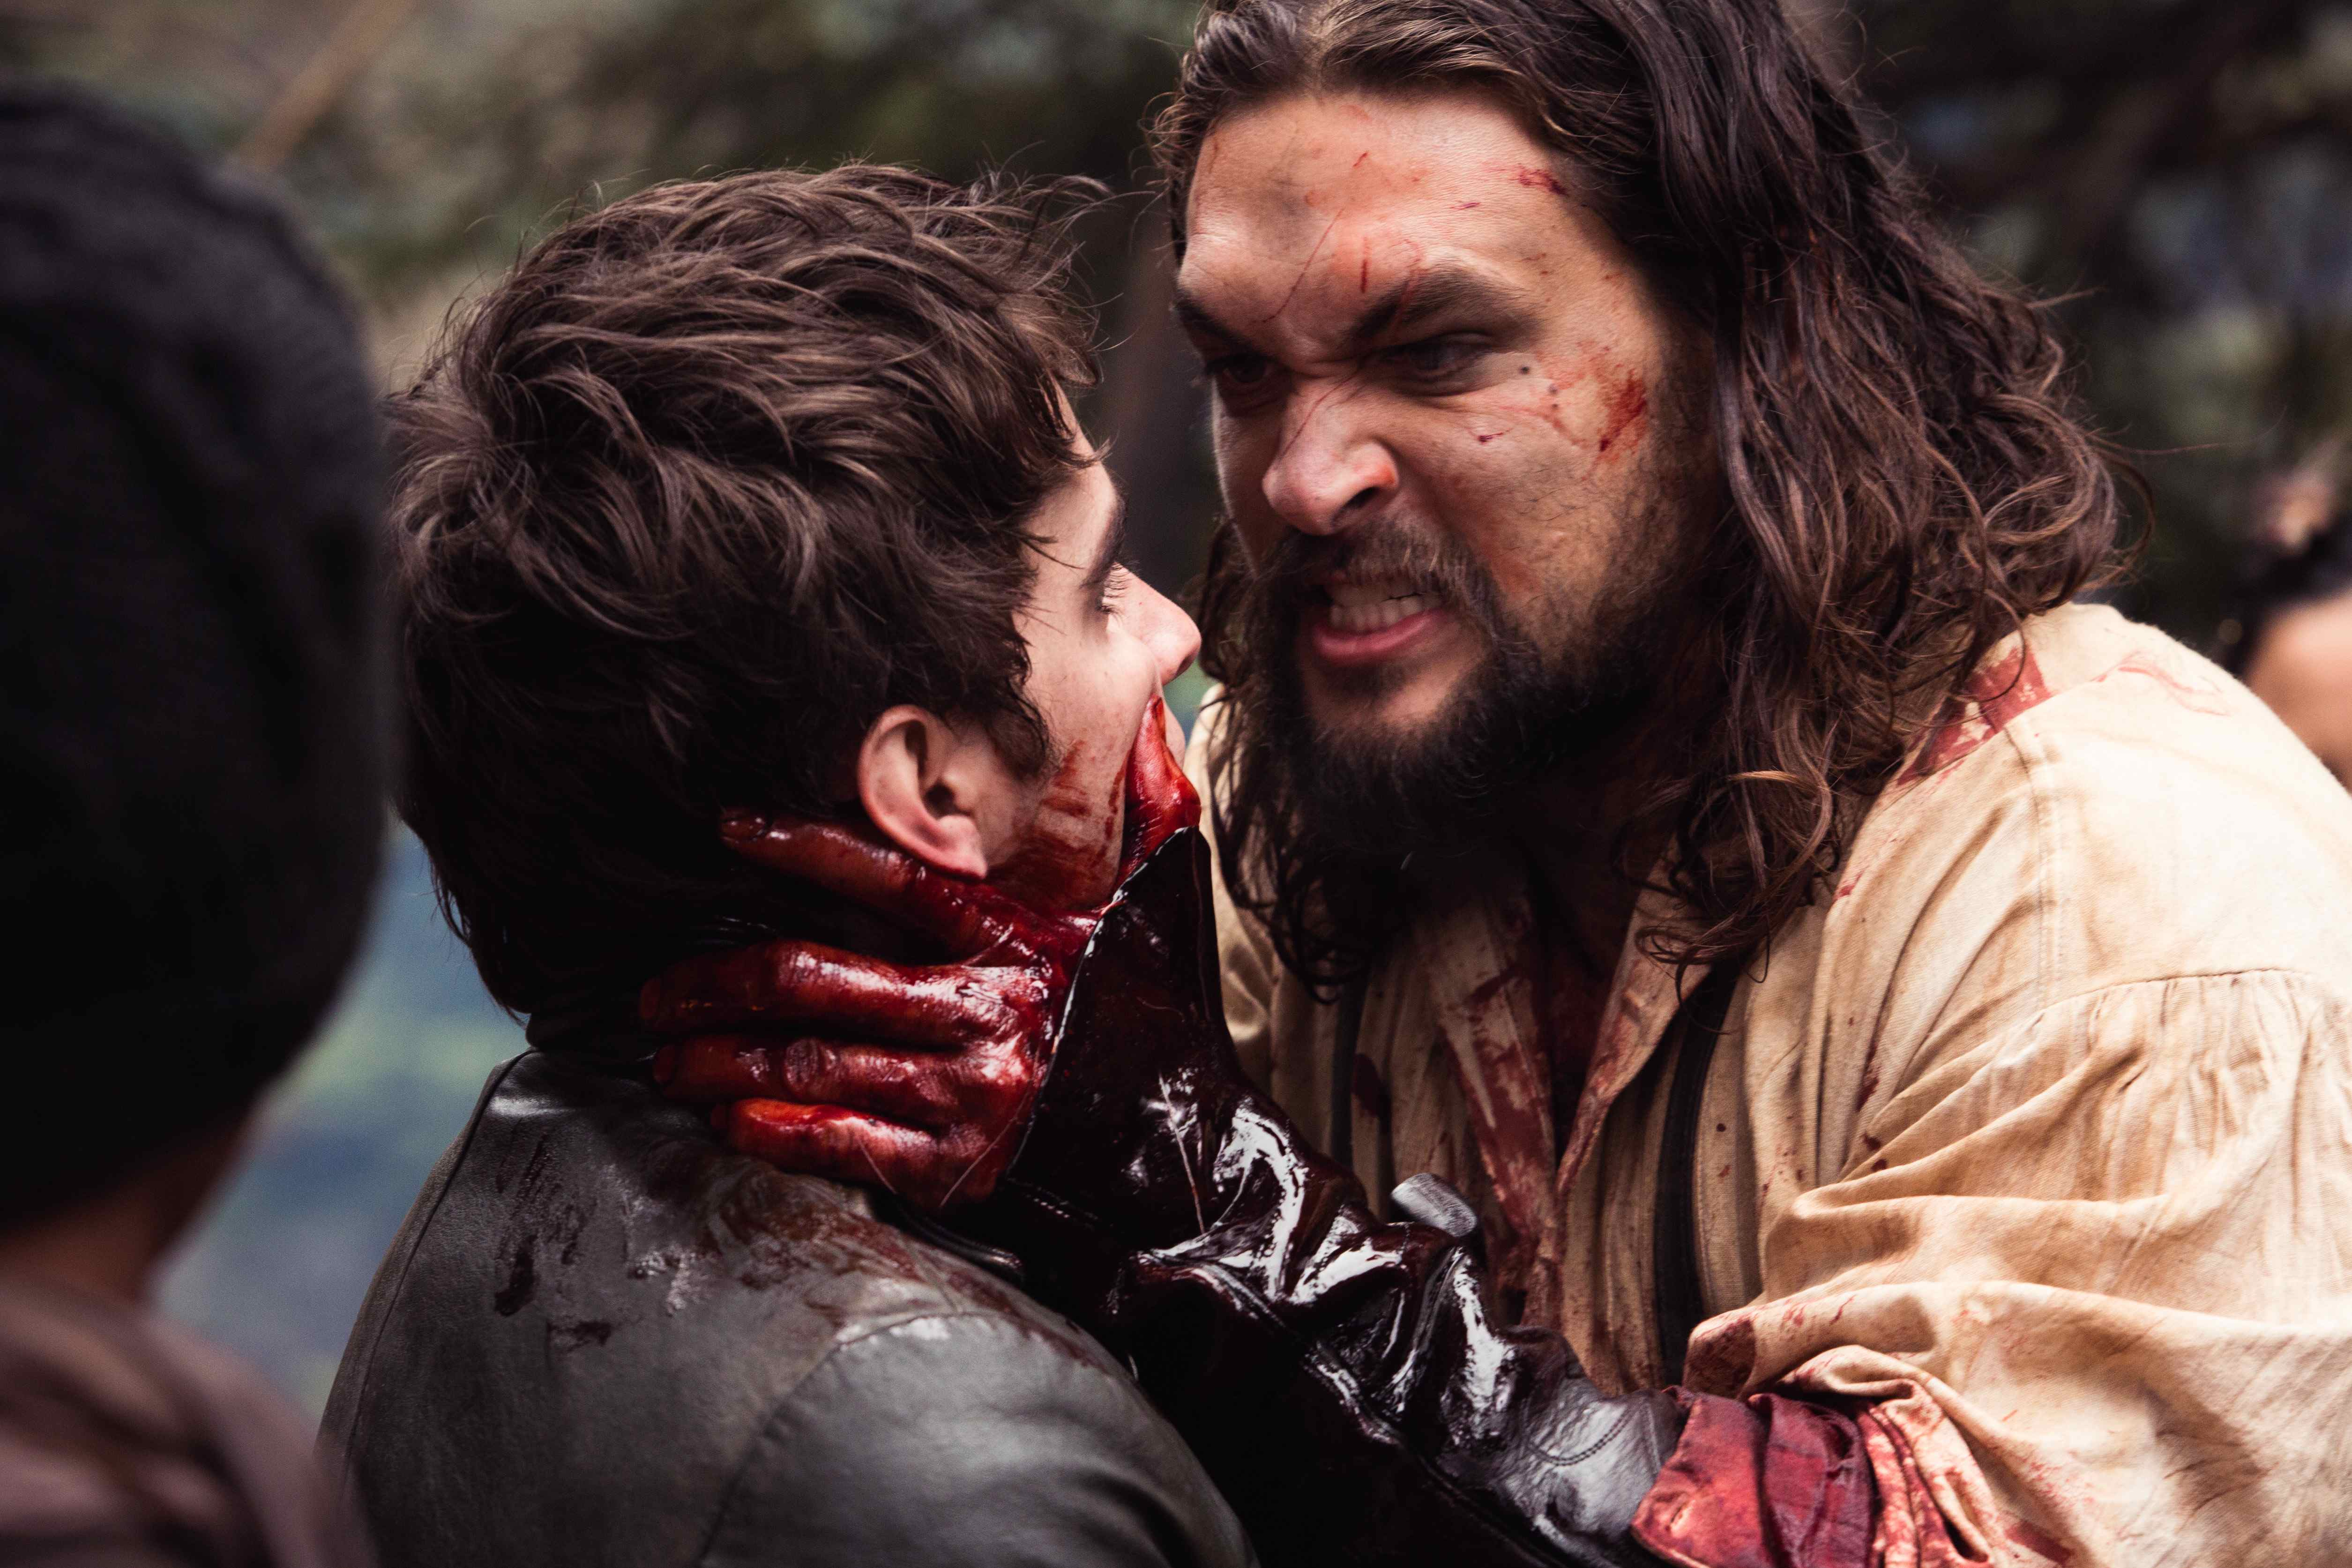 Netflix's Frontier tries to turn Canadian history into Game of Thrones. It's a mess.